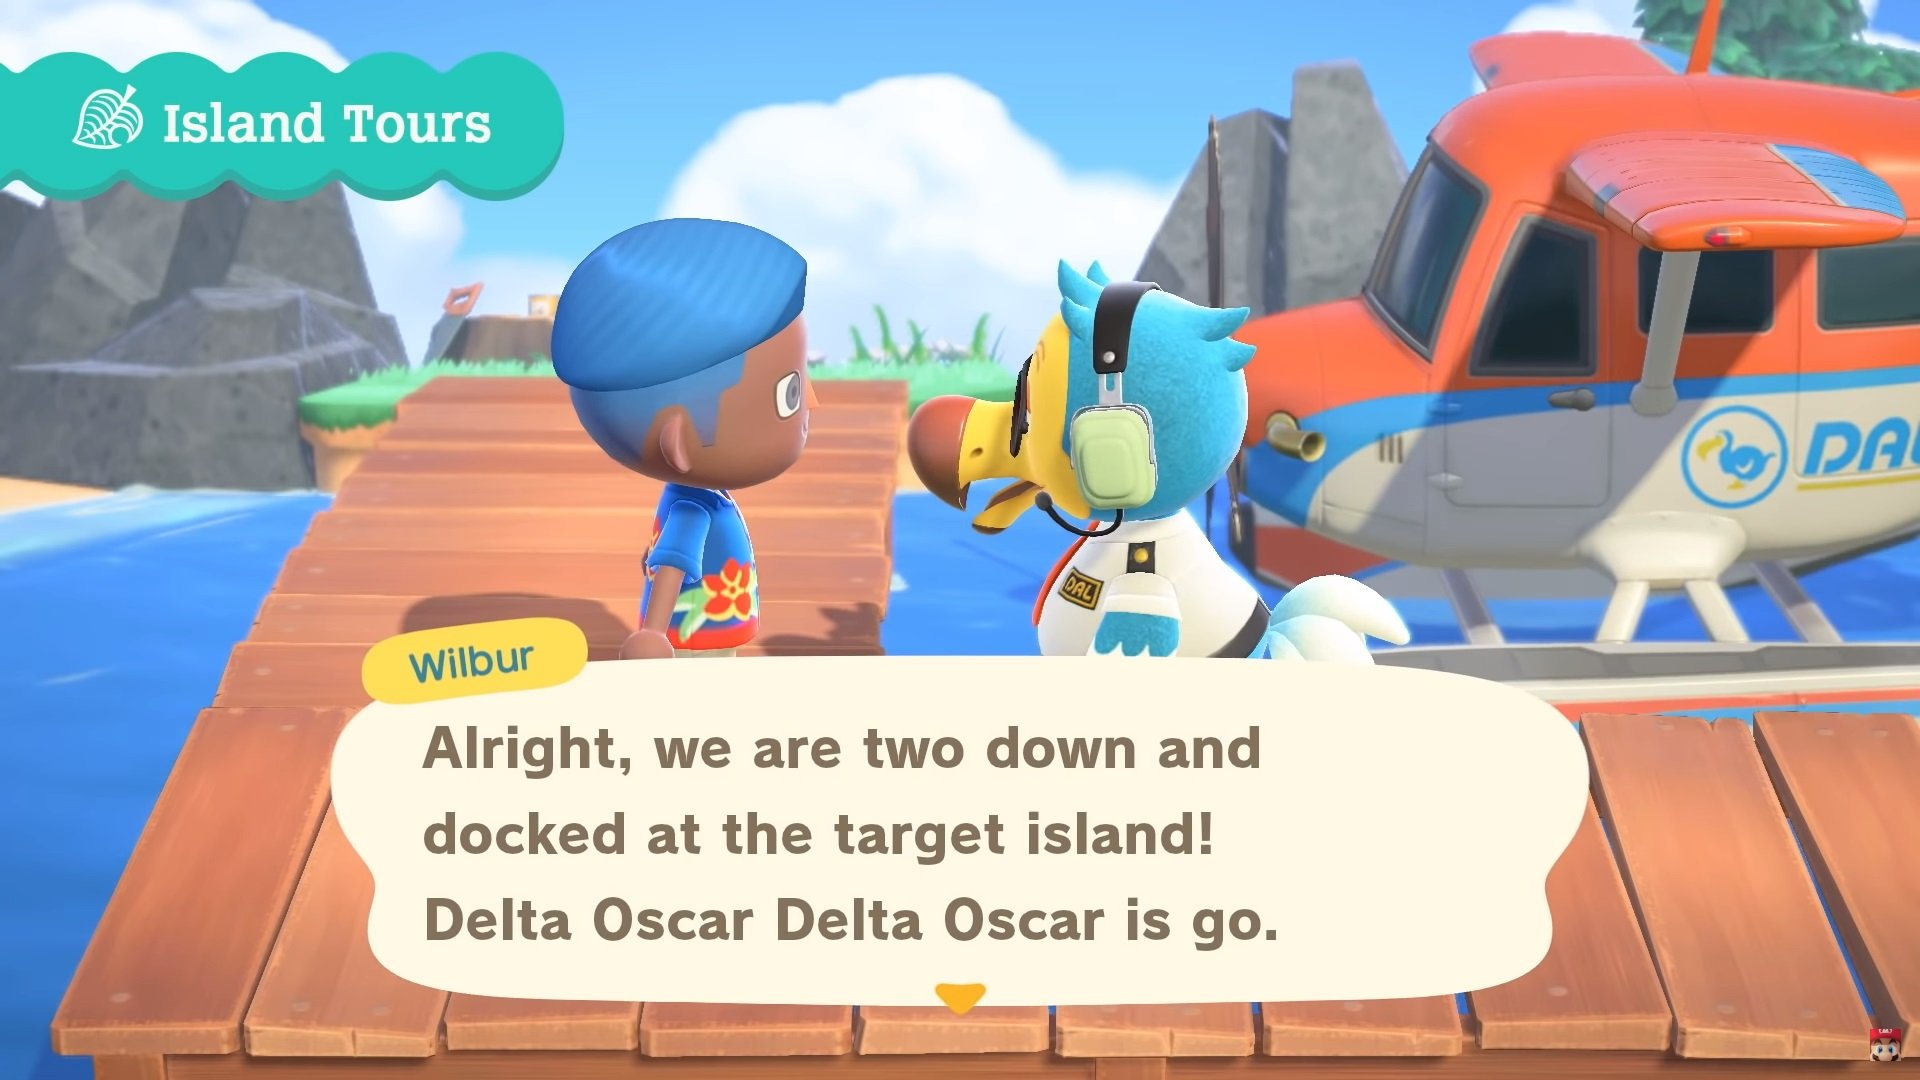 How to go on Island Tours in Animal Crossing: New Horizons